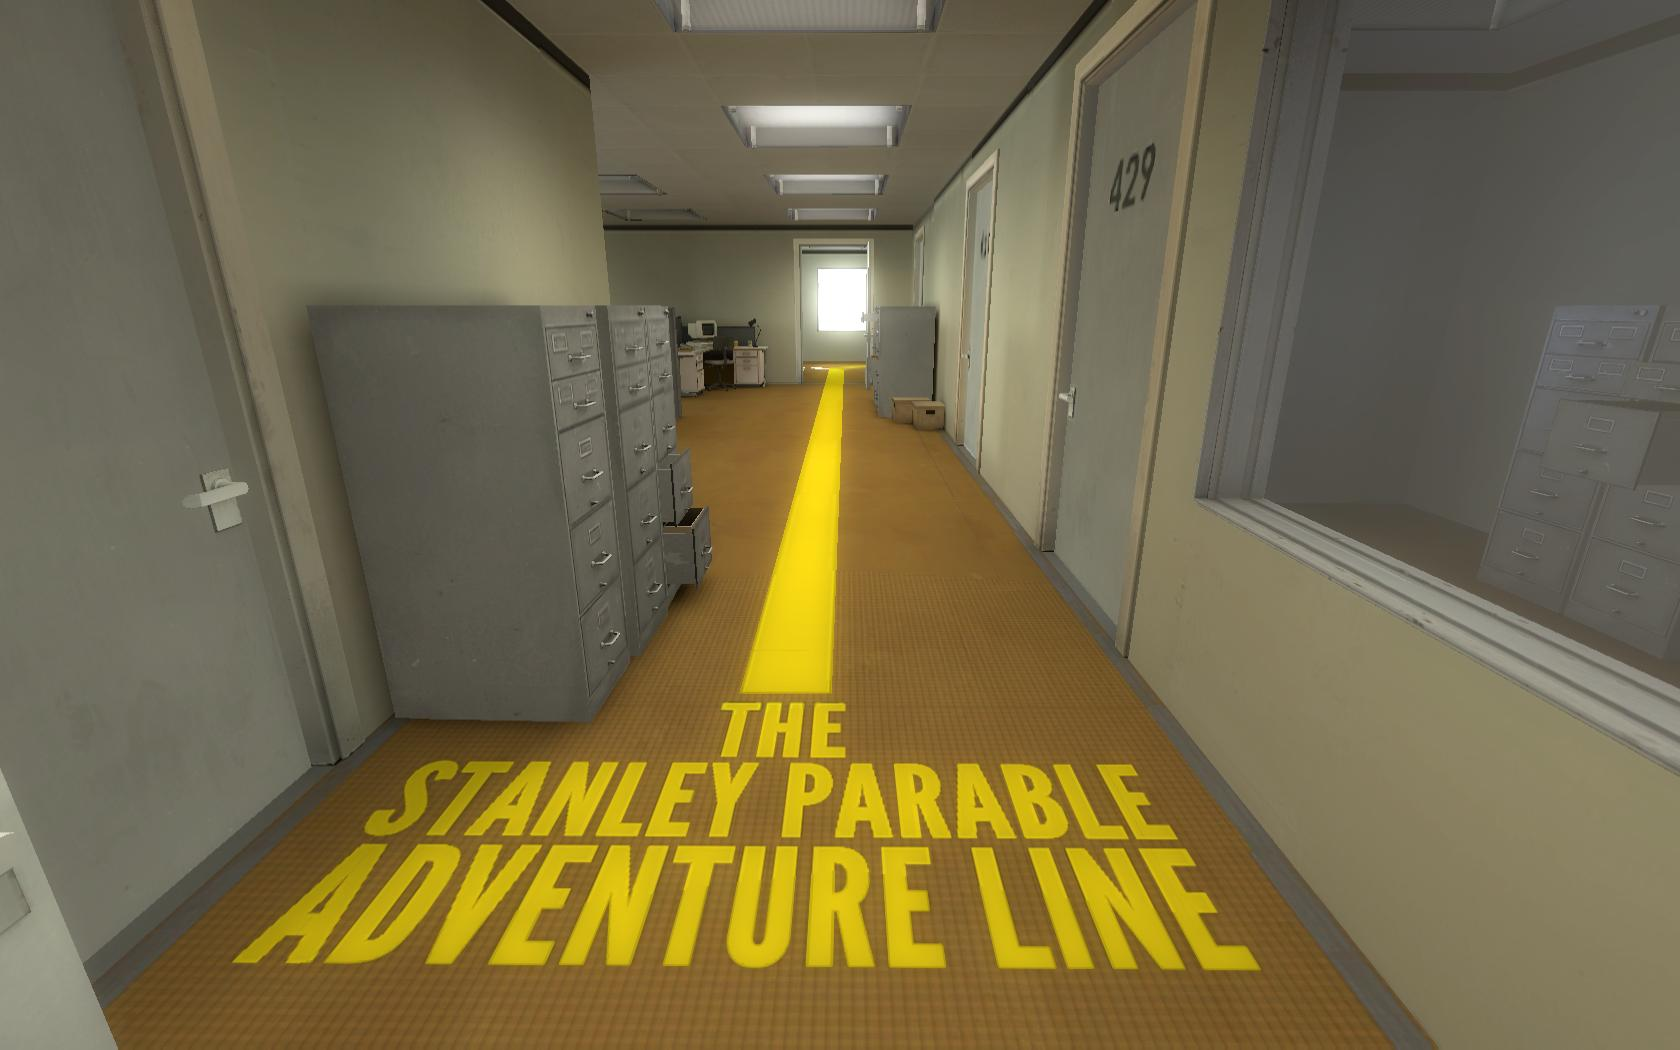 The Stanley Parable v12 file - Mod DB